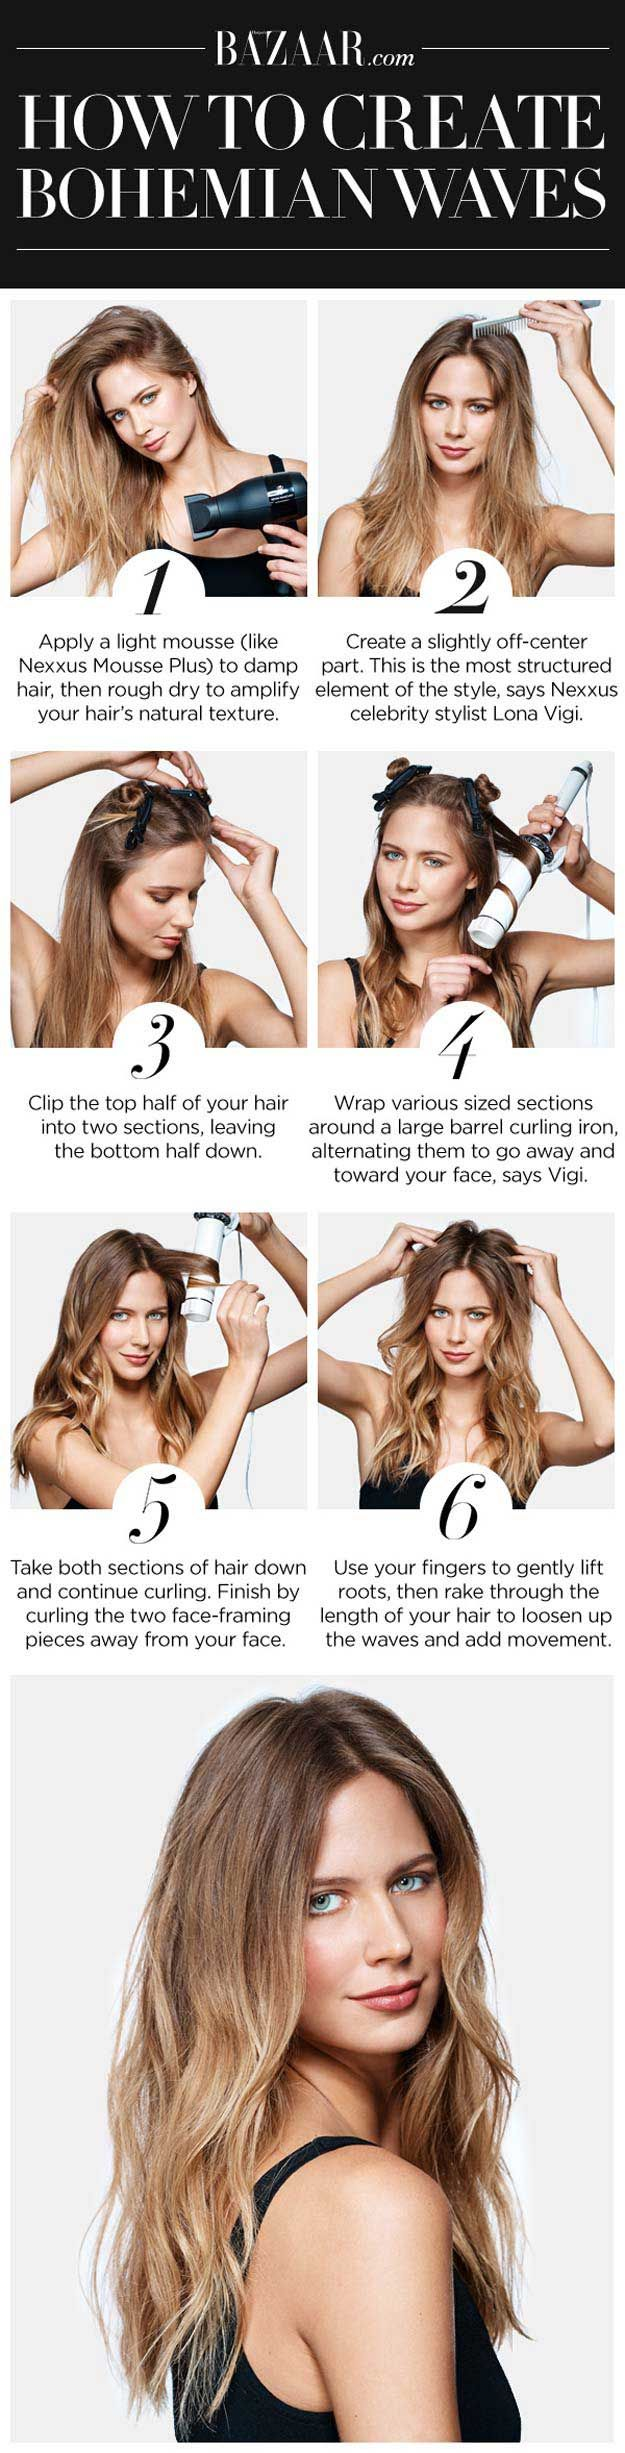 Best Hairstyles For Summer How To Create Bohemian Waves Easy And Cute Hair Styles For Long Medium And Short Hair Hair Styles Long Hair Styles Hair Waves